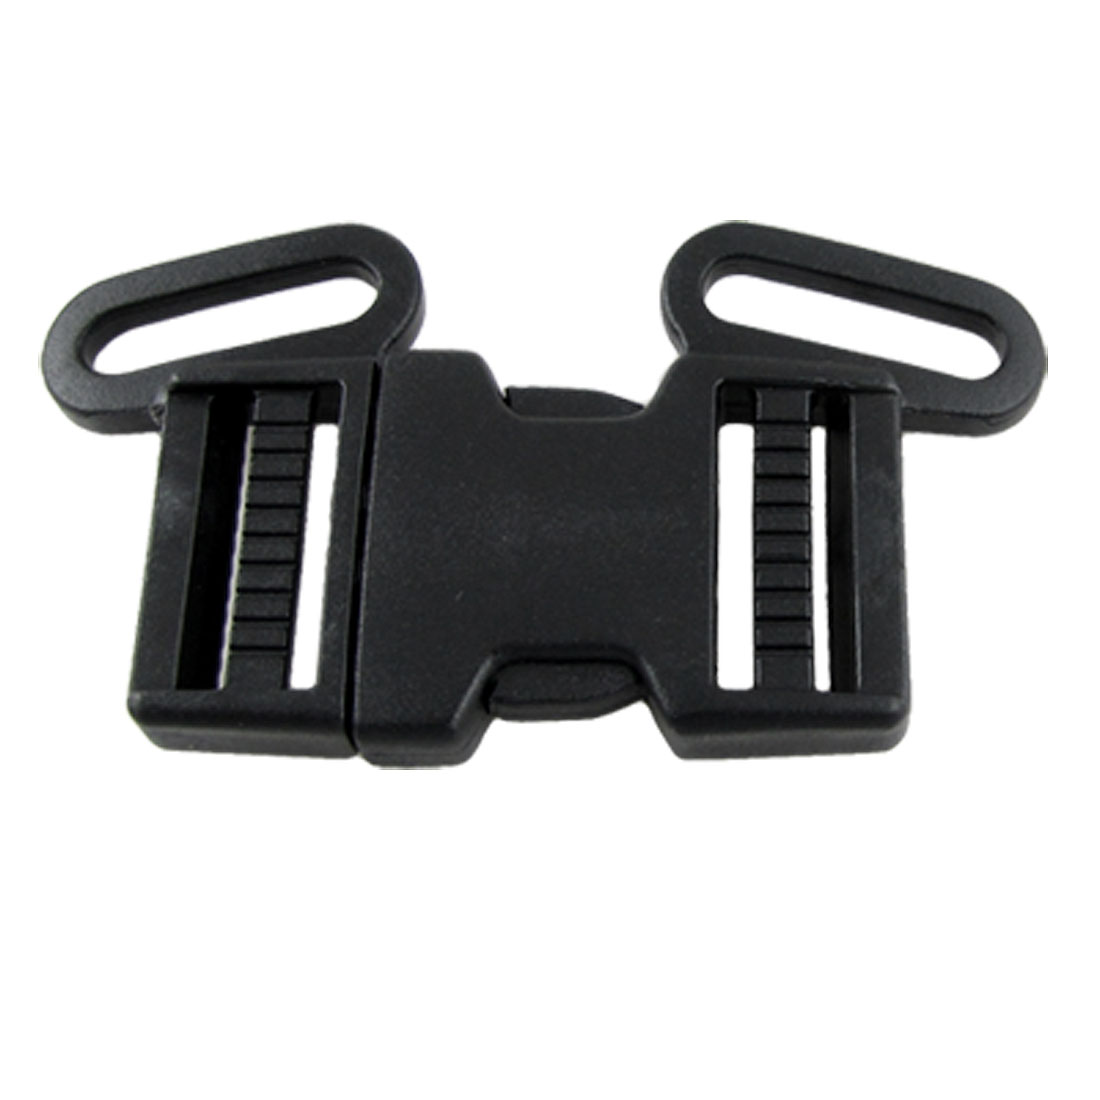 Black Hard Plastic Quick Release Buckle for School Bag Backpack